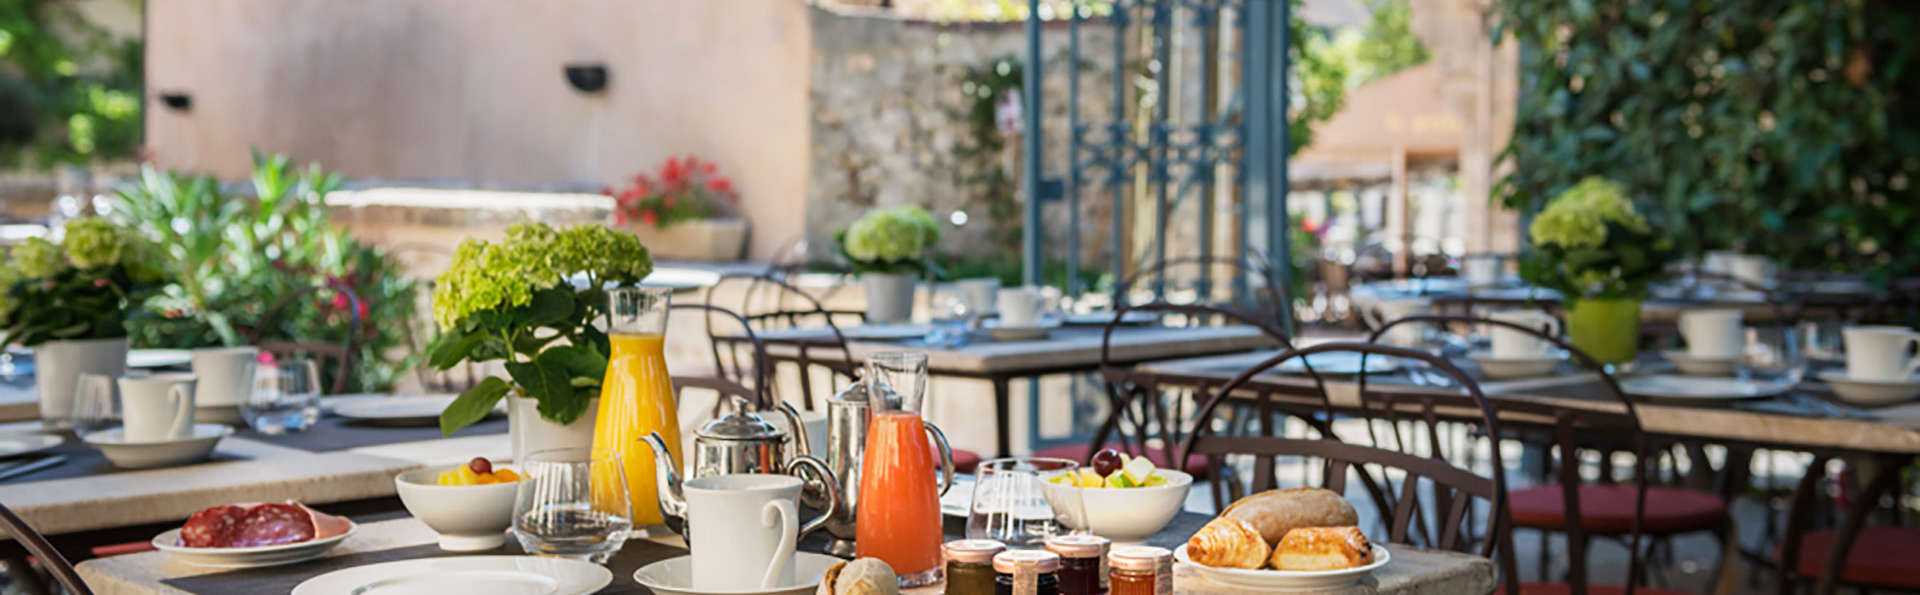 Hotel The Originals Aux Vieux Remparts (ex Relais du Silence) - EDIT_breakfasterrace.jpg